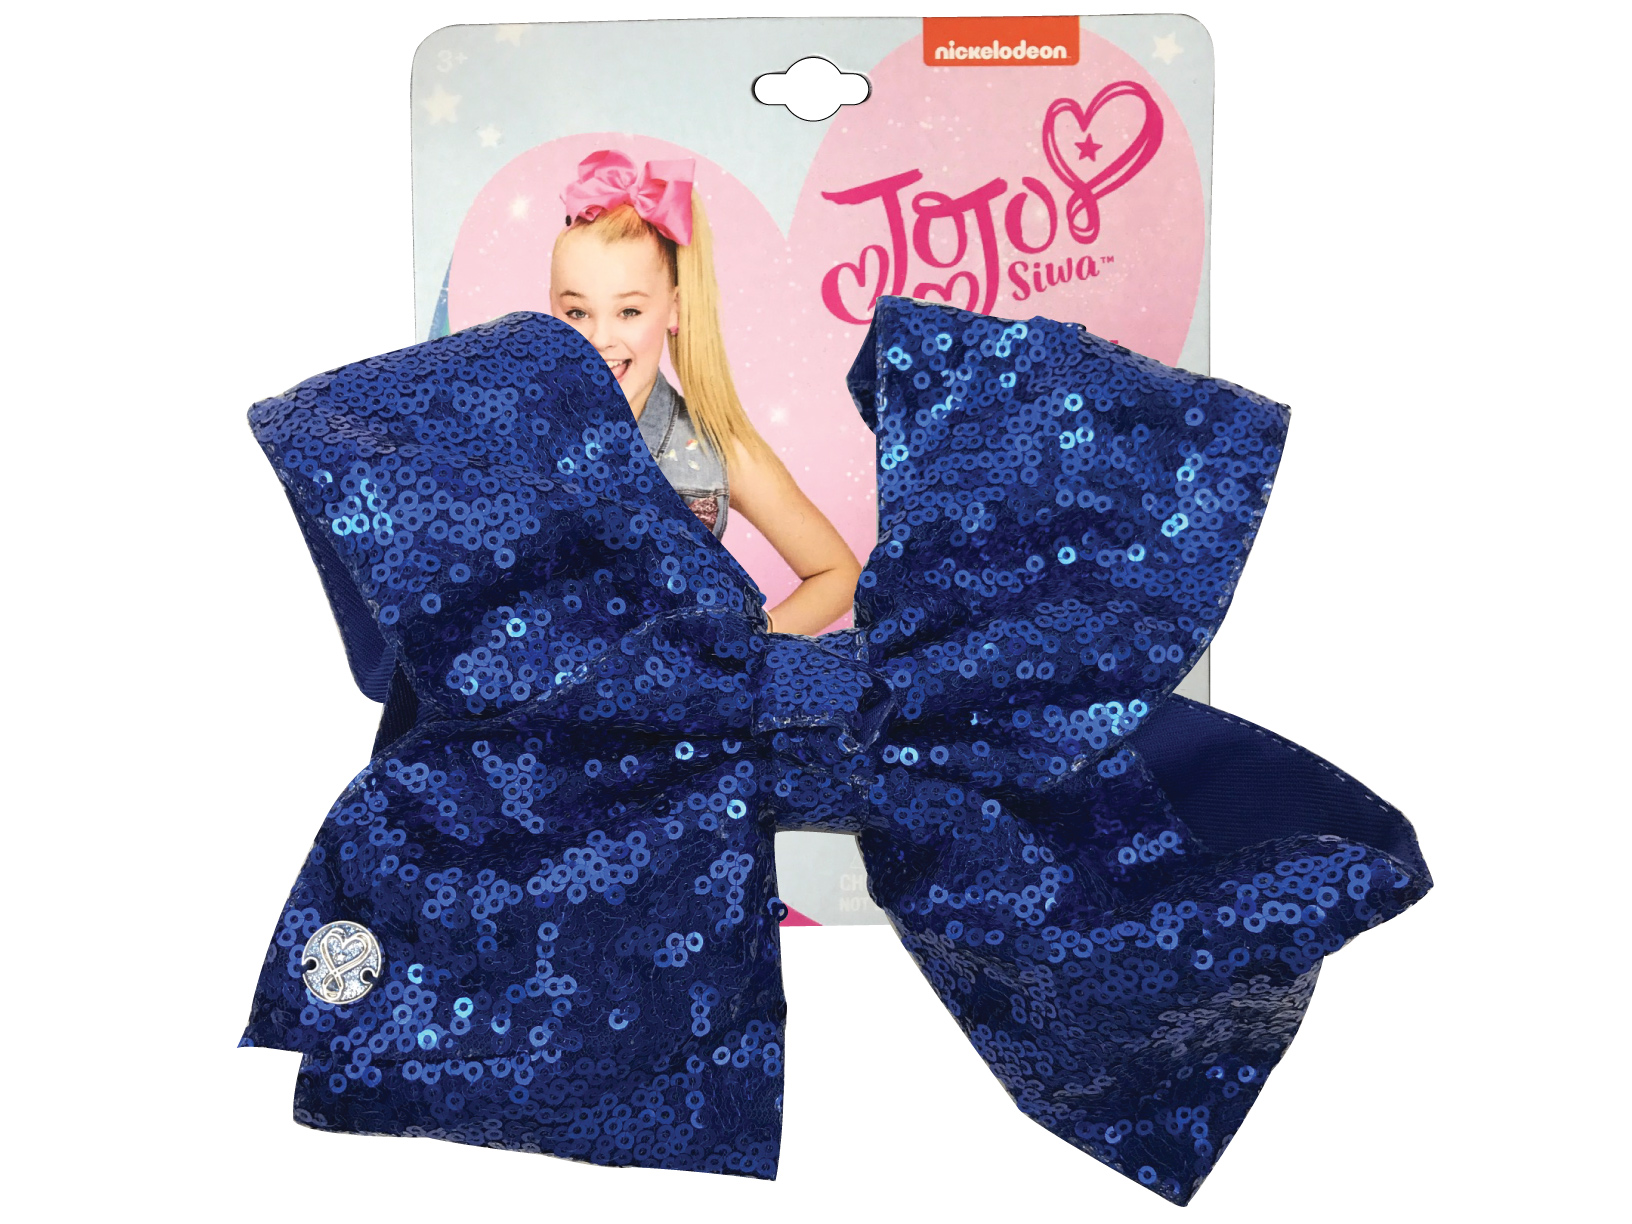 JoJo Siwa Large Cheer Hair Bow (Cobalt Blue Sequined)